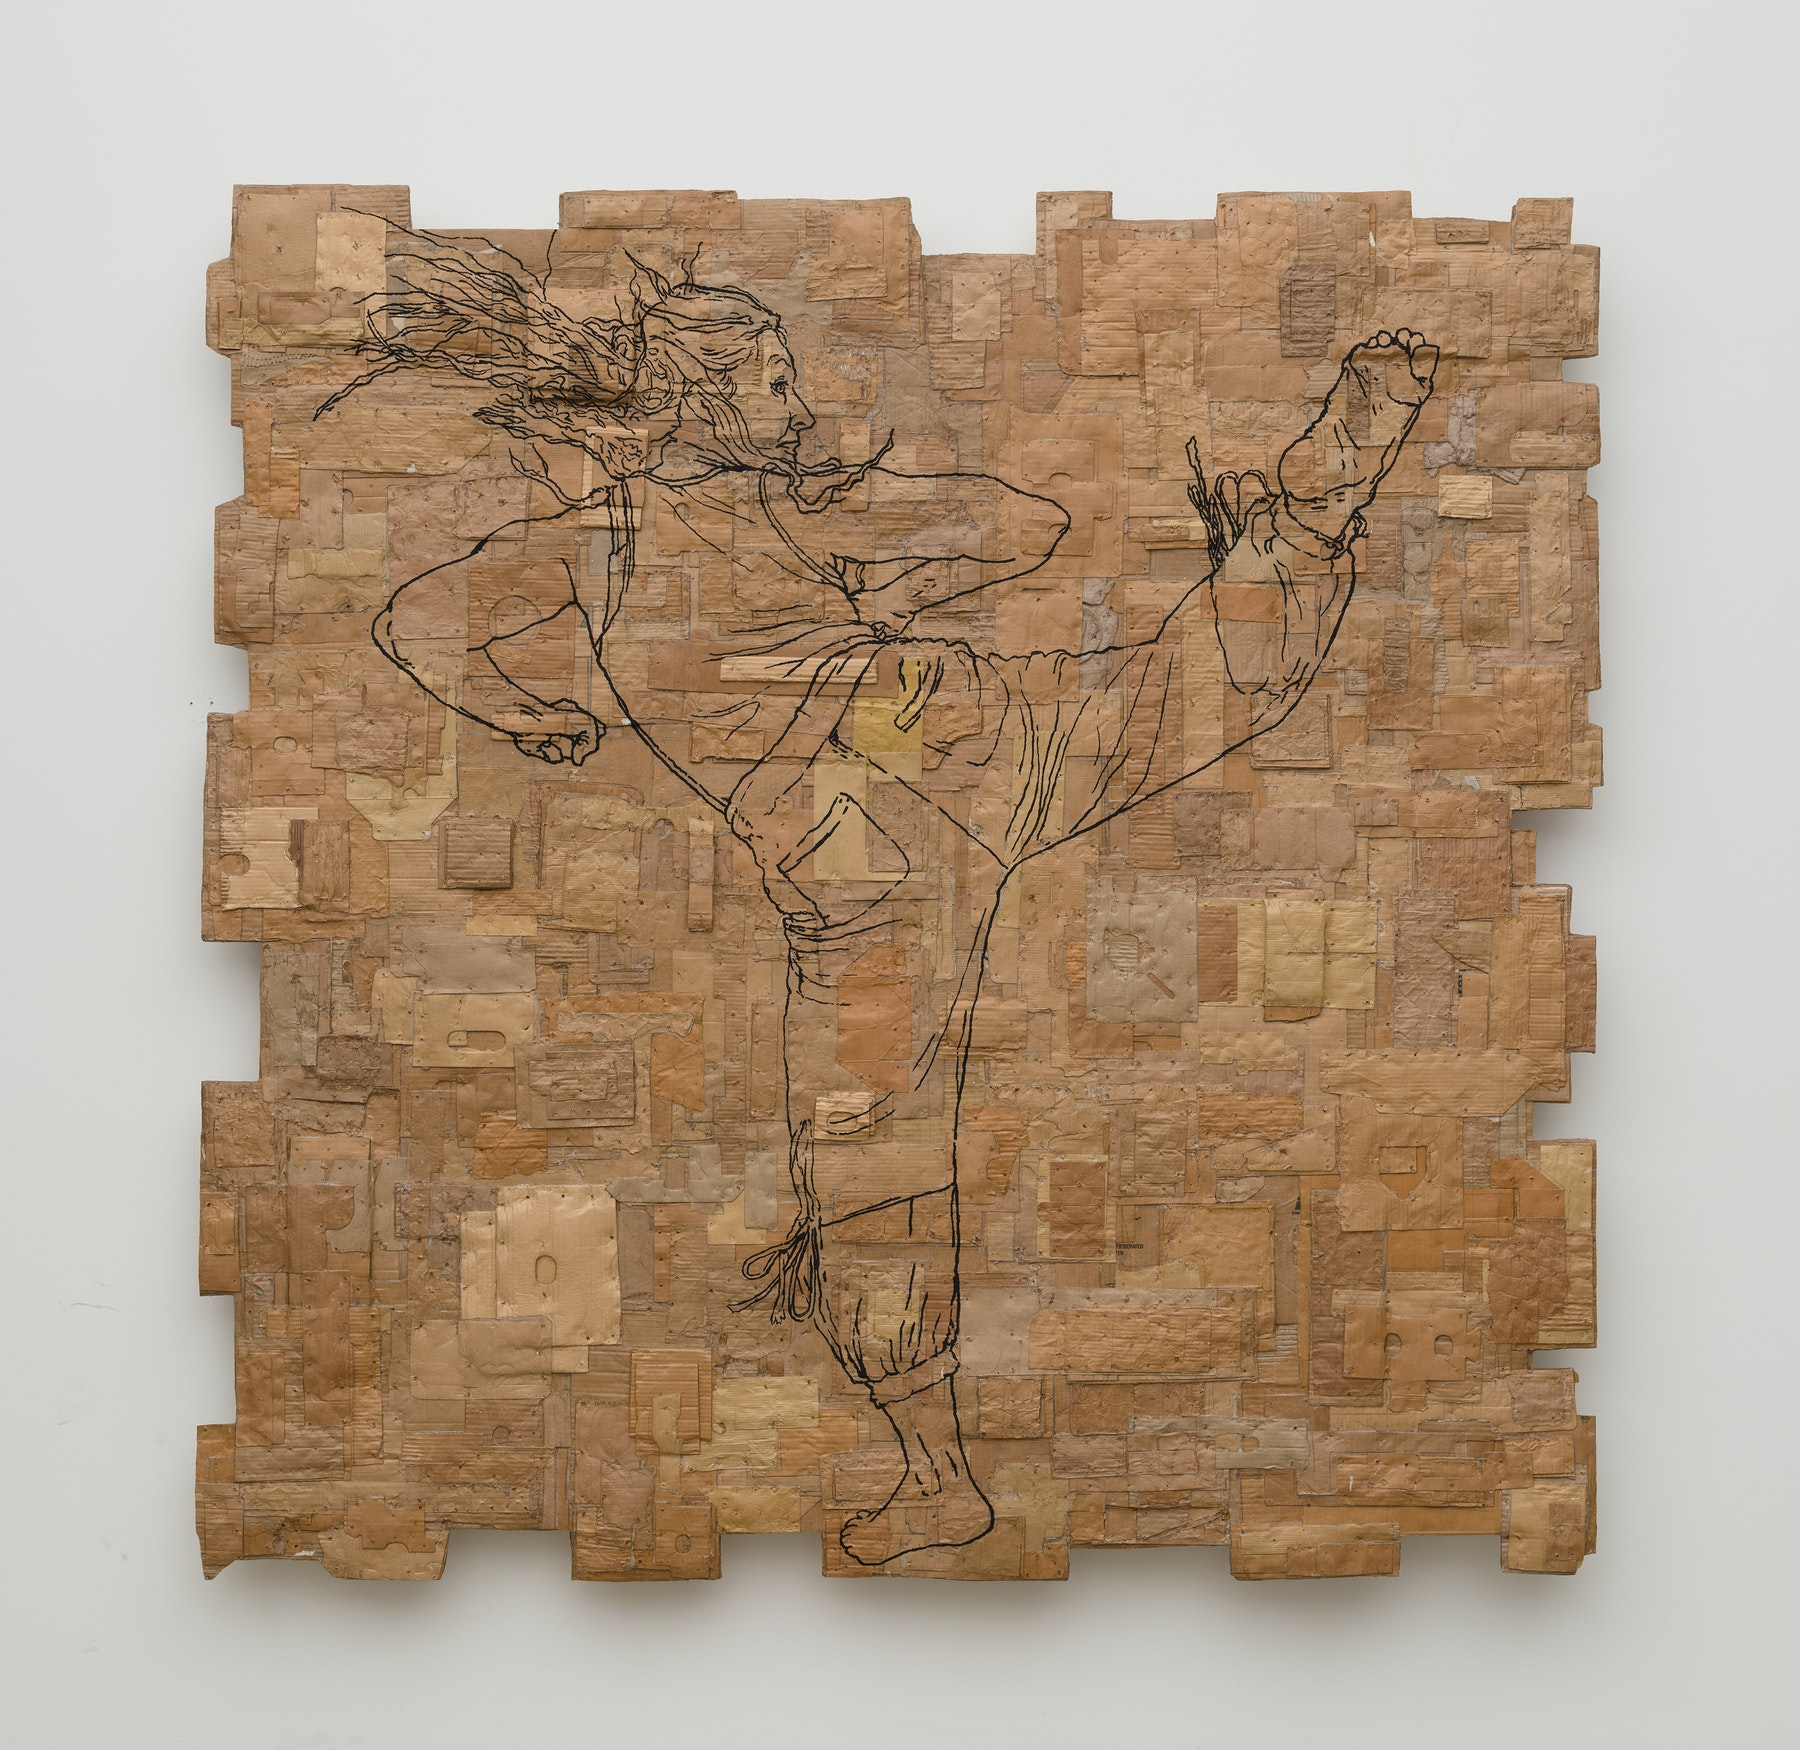 """Andrea Bowers """"Fighting Women, Victoriya, Back Spinning Hook Kick,"""" 2021 Acrylic and pigment ink on cardboard 84"""" x 84"""" x 4"""" [HxWxD] (213.36 x 213.36 x 10.16 cm) Inventory #BOW577 Courtesy of the artist and Vielmetter Los Angeles Photo credit: Jeff McLane"""